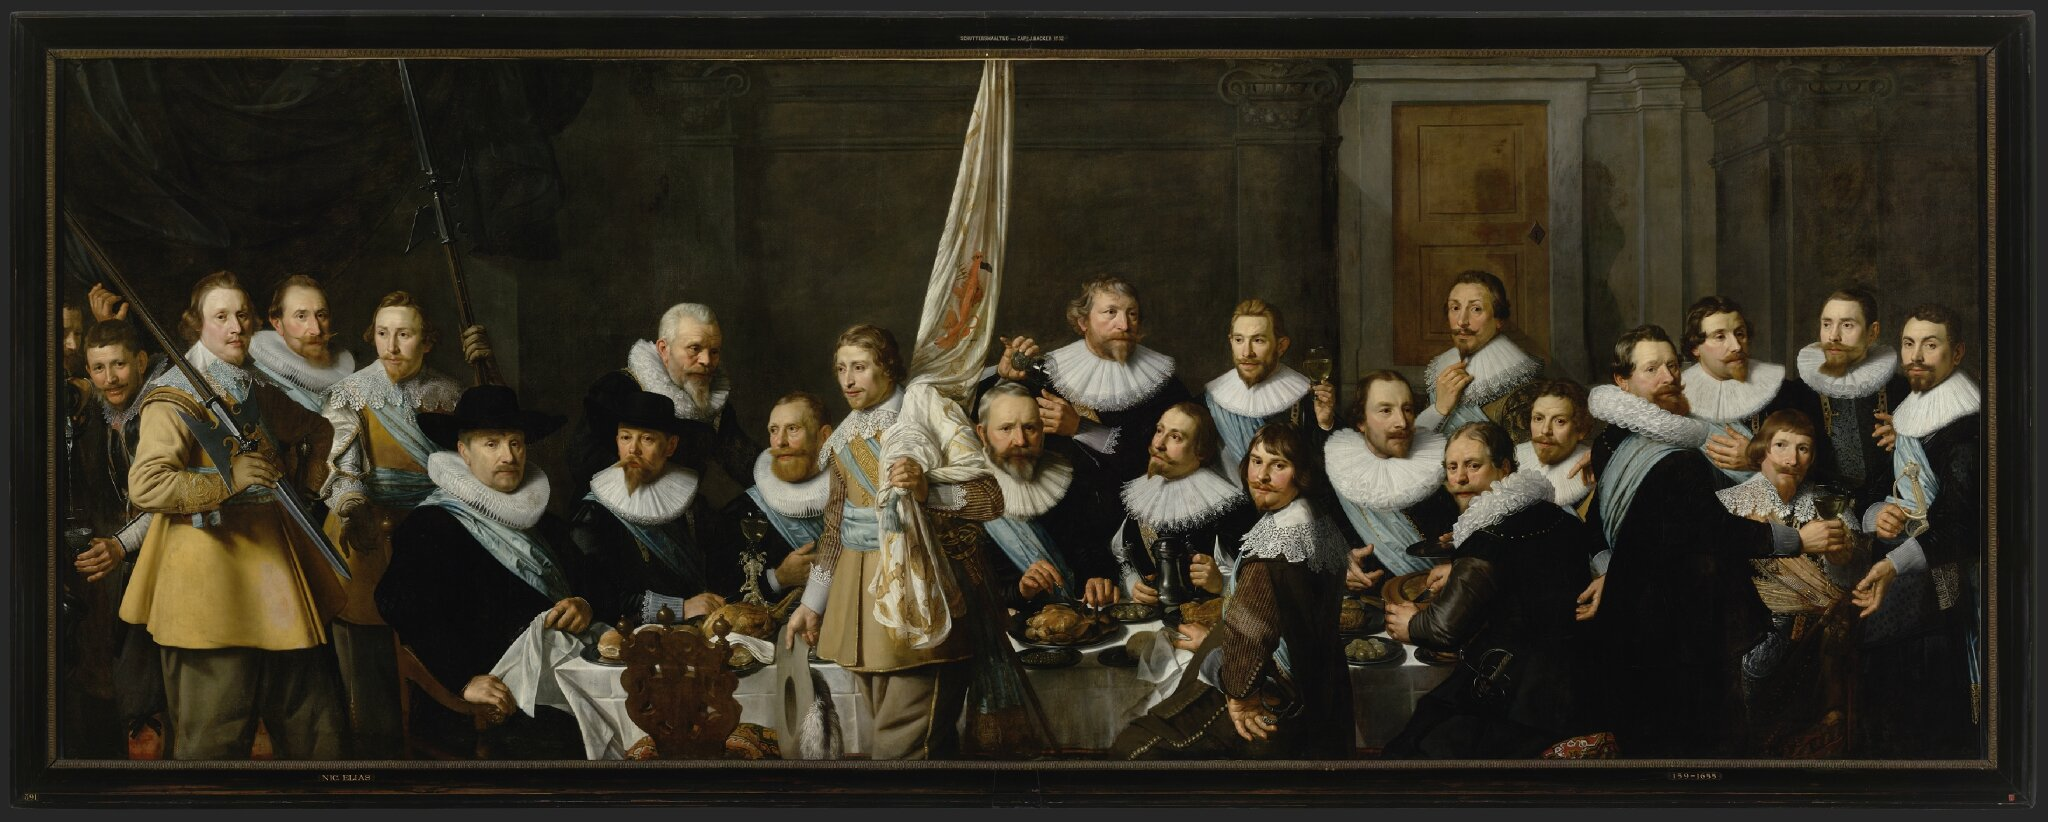 'Portrait Gallery of the Golden Age' at Hermitage Amsterdam